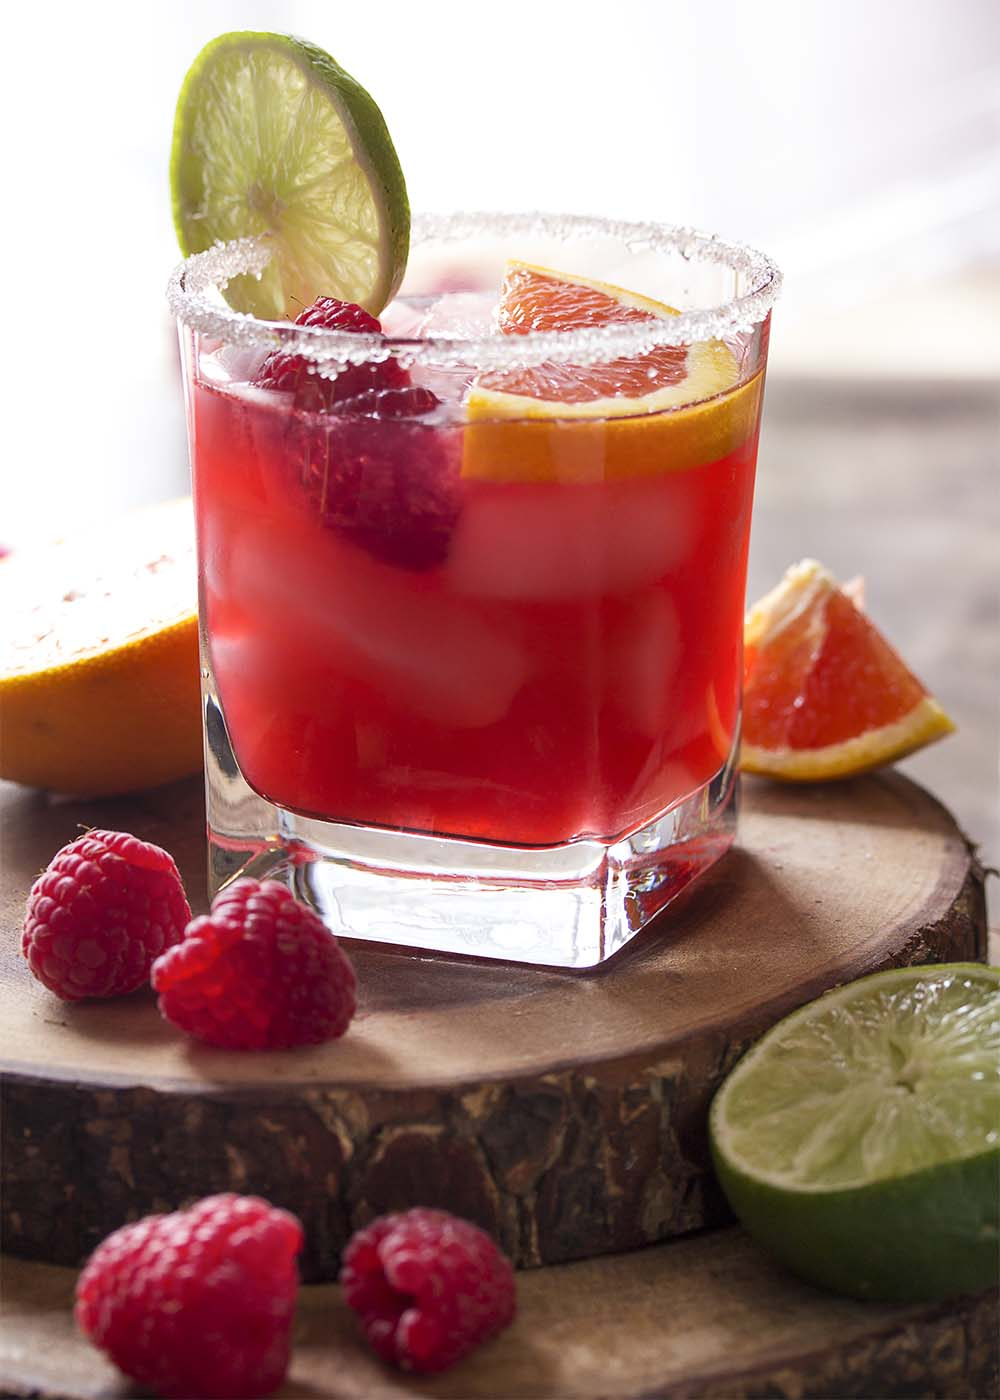 A margarita garnished with lime, orange, and raspberries in a sugar rimmed glass.